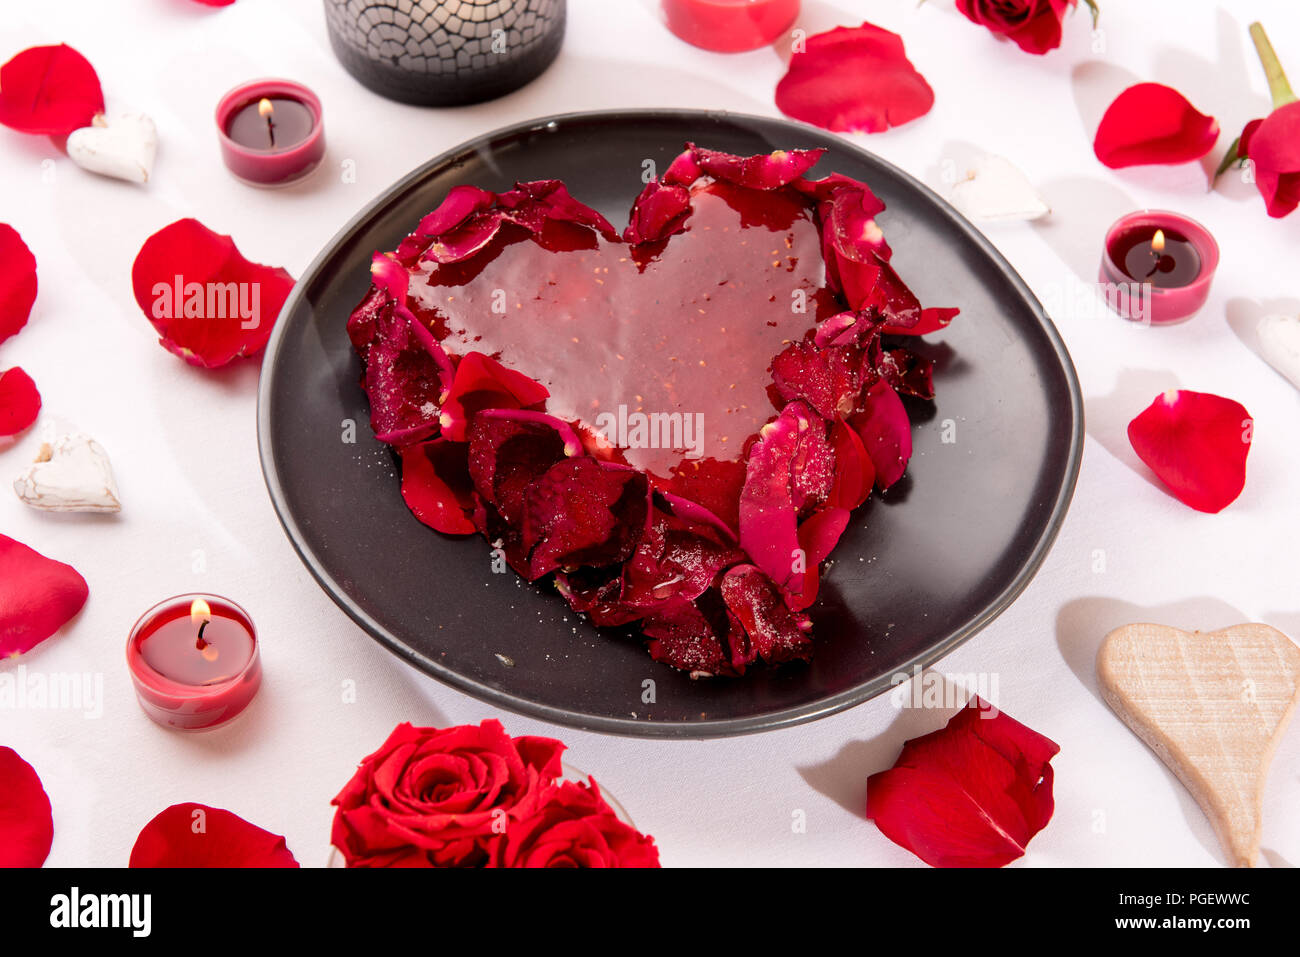 Romantic heart-shaped red cake with rose petals served on a white table decorated with candles,, rose petals and hearts for an anniversary or Valentin - Stock Image